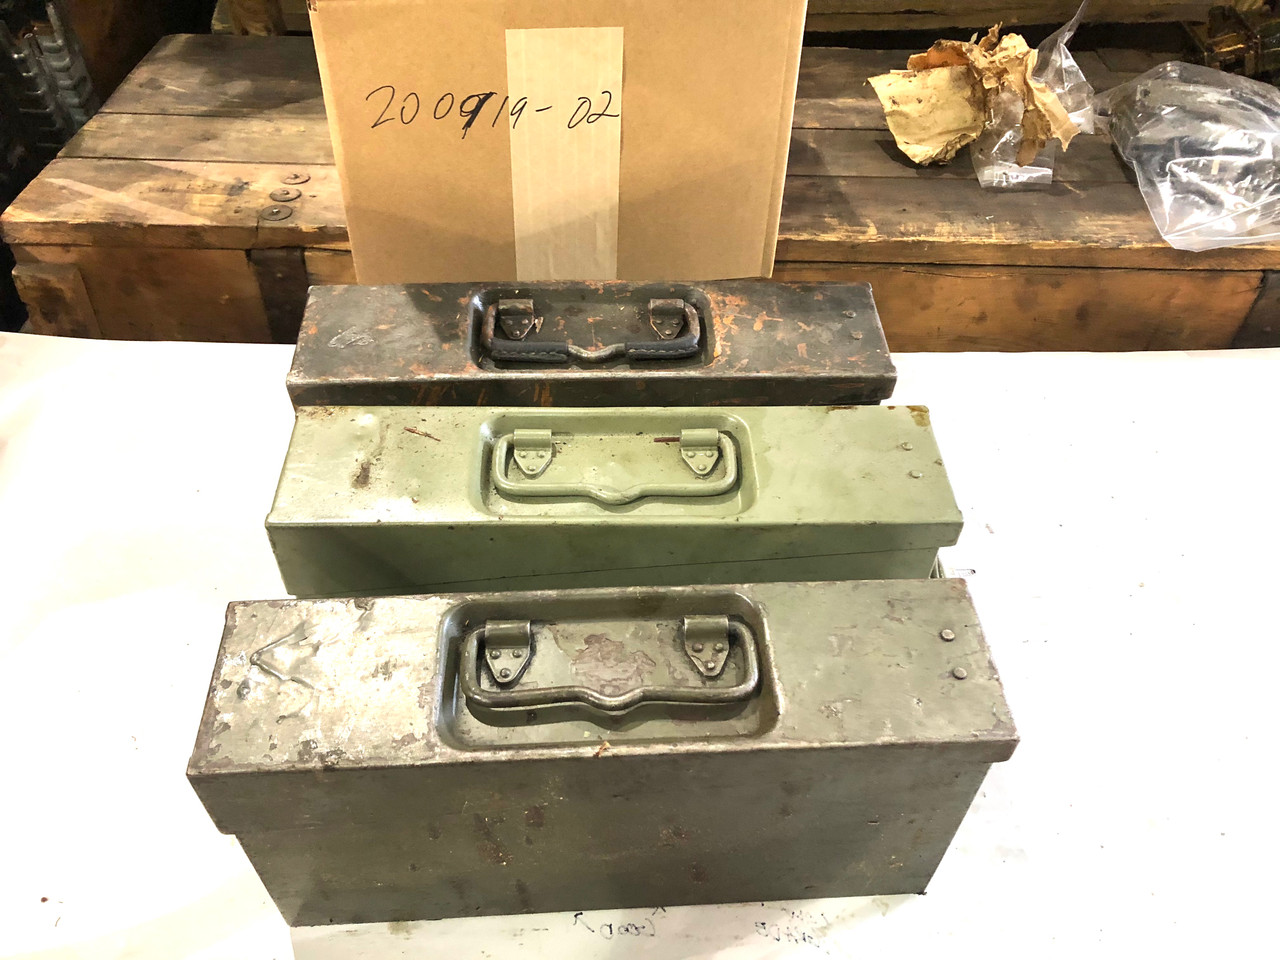 Lot of 3 VZ37 8mm Ammo Cans  - 200919-02